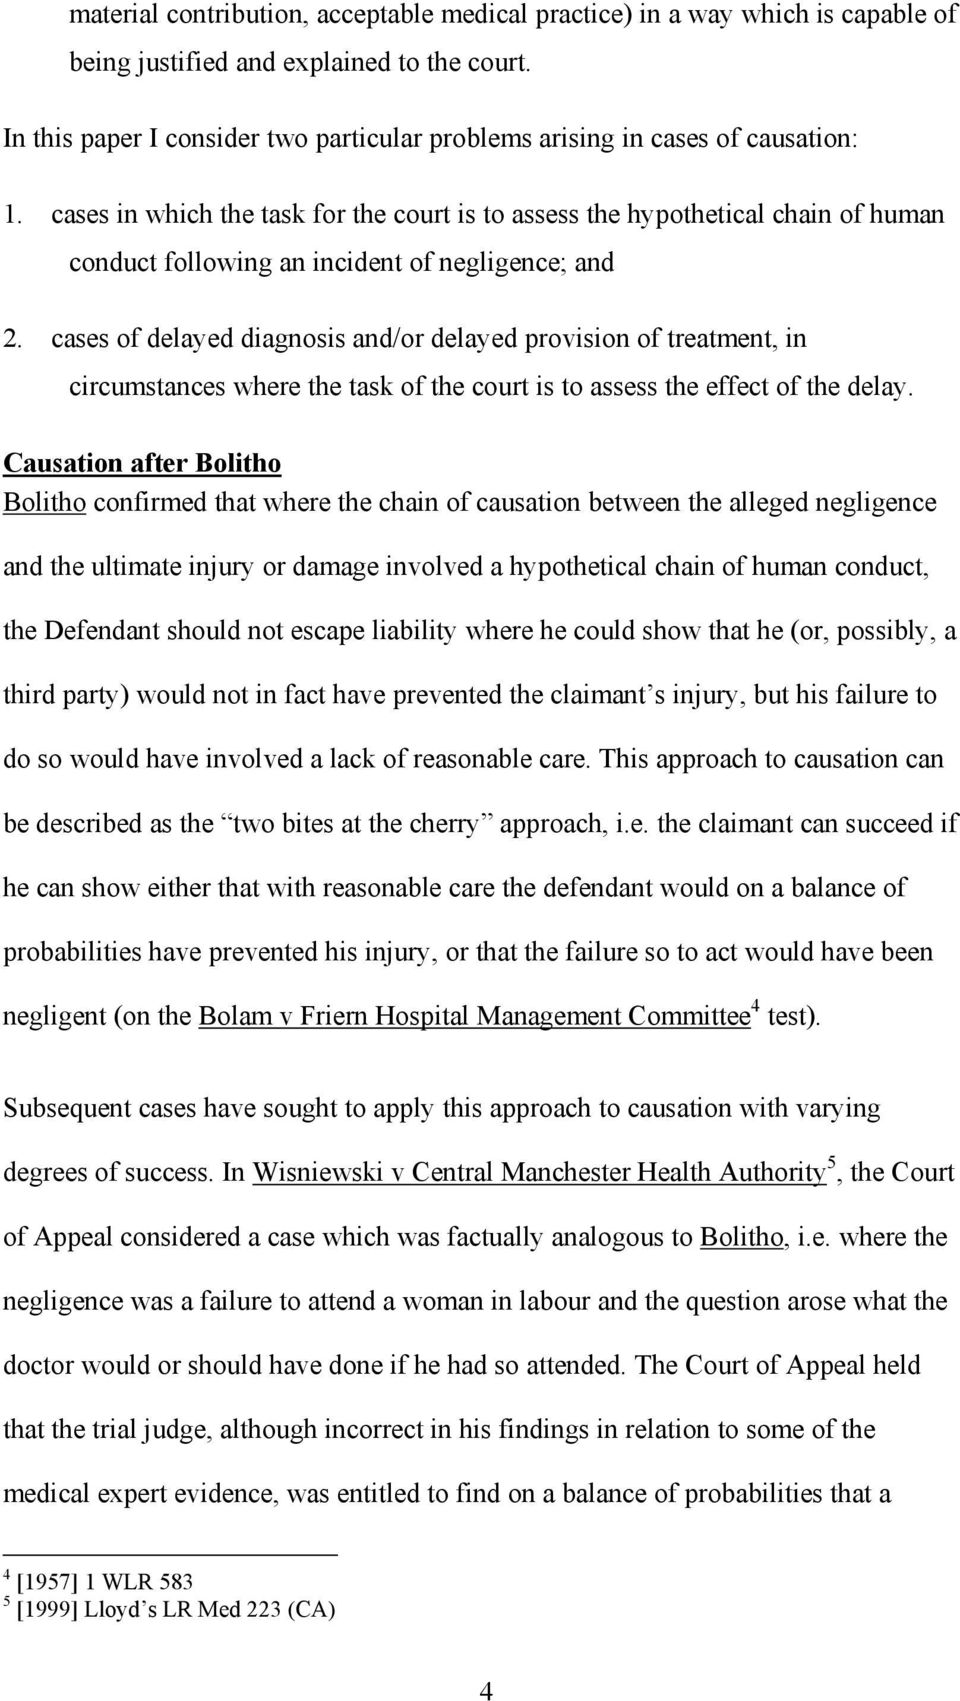 cases in which the task for the court is to assess the hypothetical chain of human conduct following an incident of negligence; and 2.